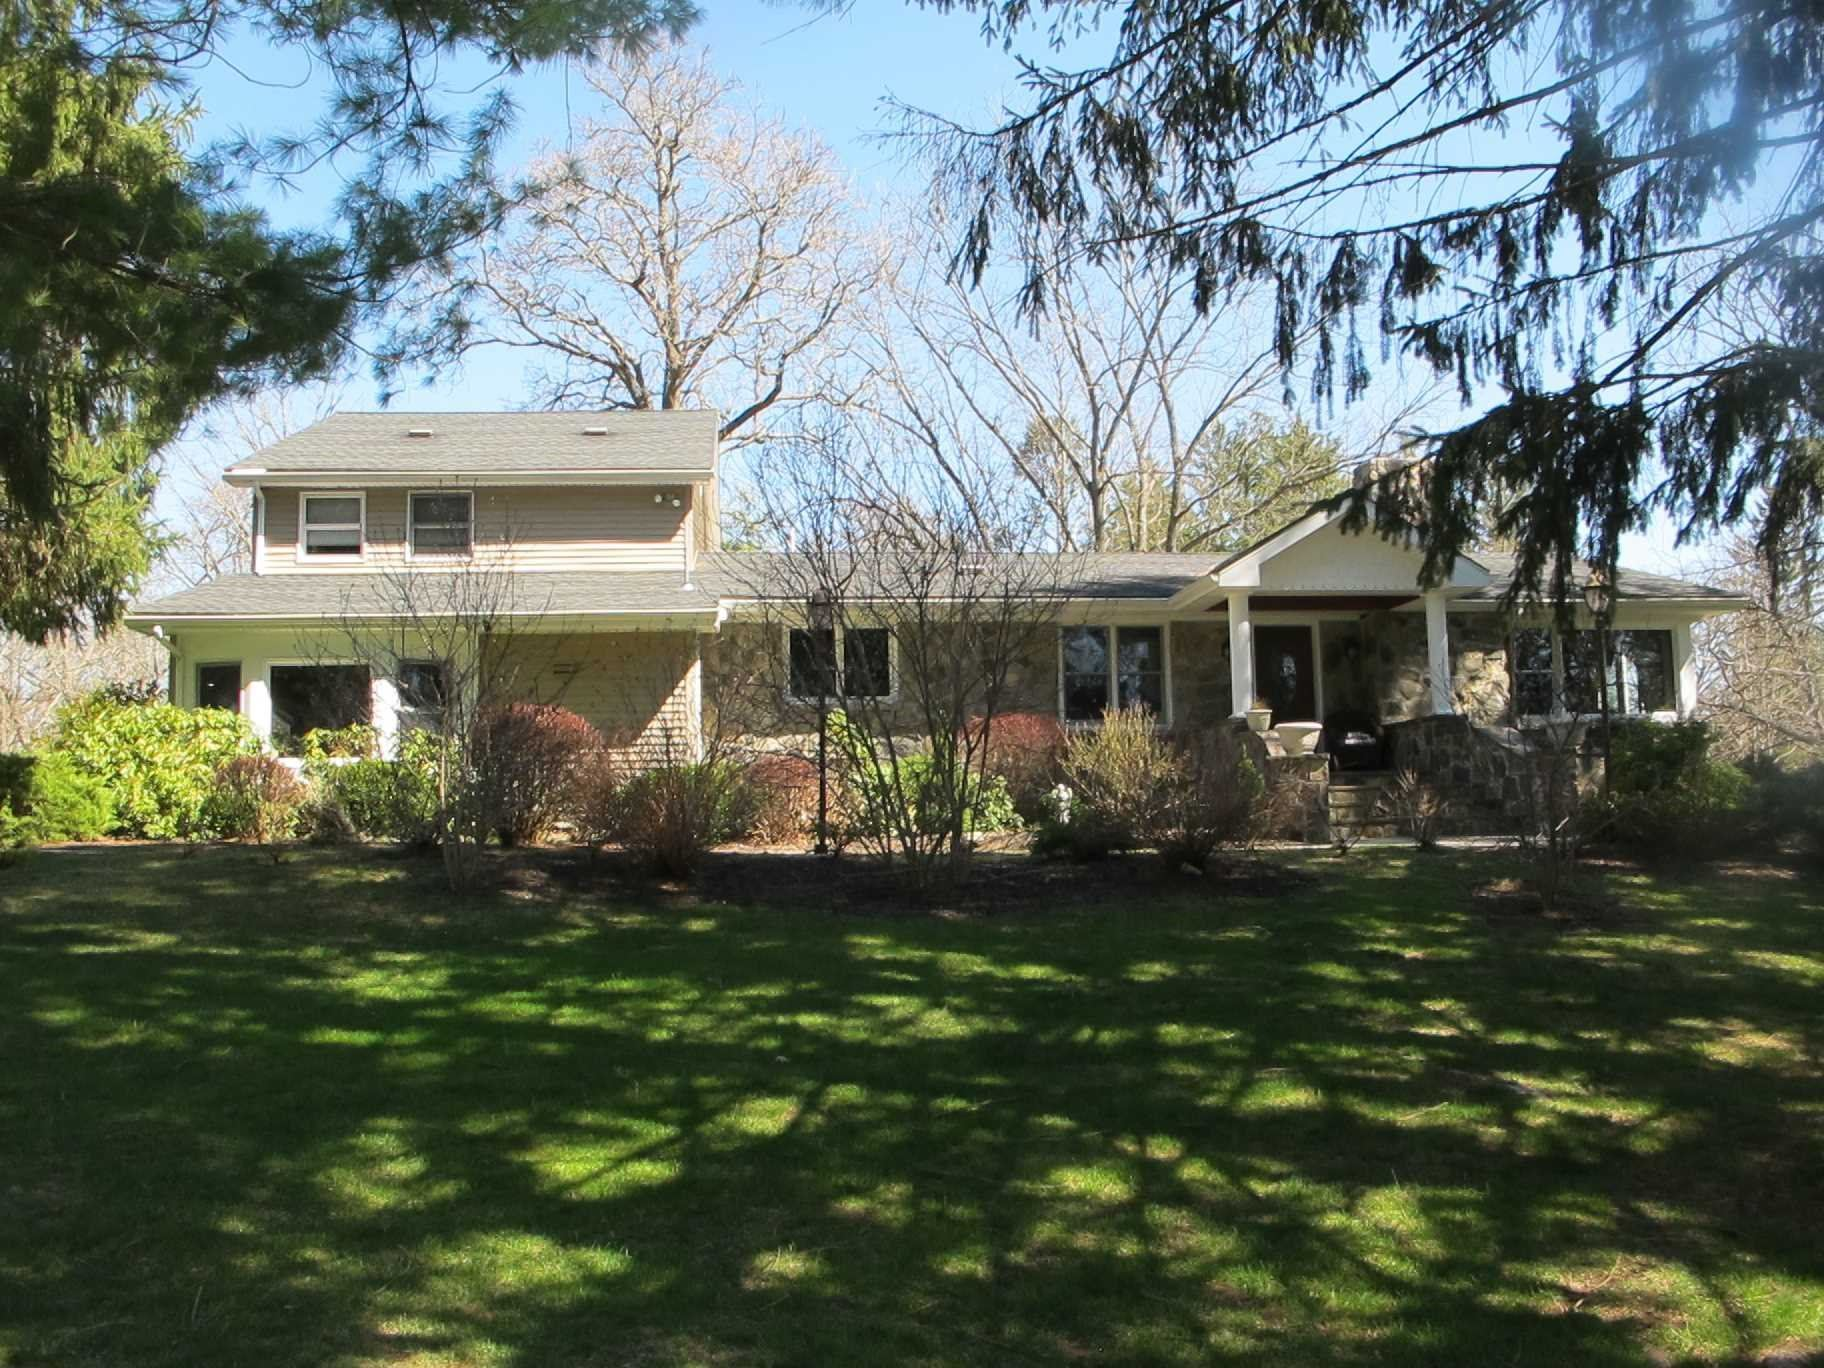 1471 ROUTE 376, Wappingers Falls, NY 12590 - #: 399102